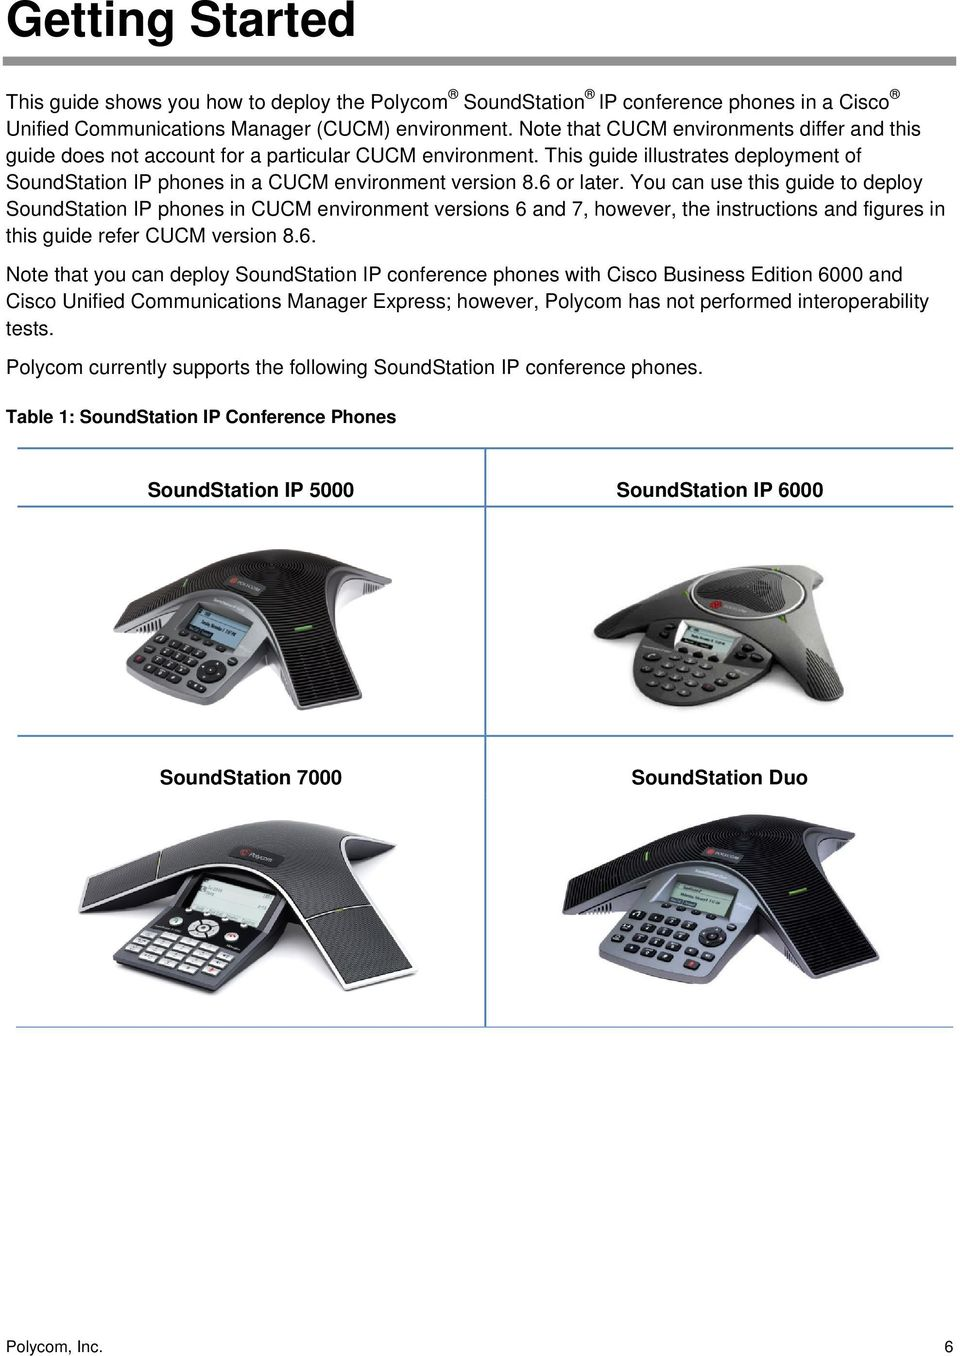 6 or later. You can use this guide to deploy SoundStation IP phones in CUCM environment versions 6 and 7, however, the instructions and figures in this guide refer CUCM version 8.6. Note that you can